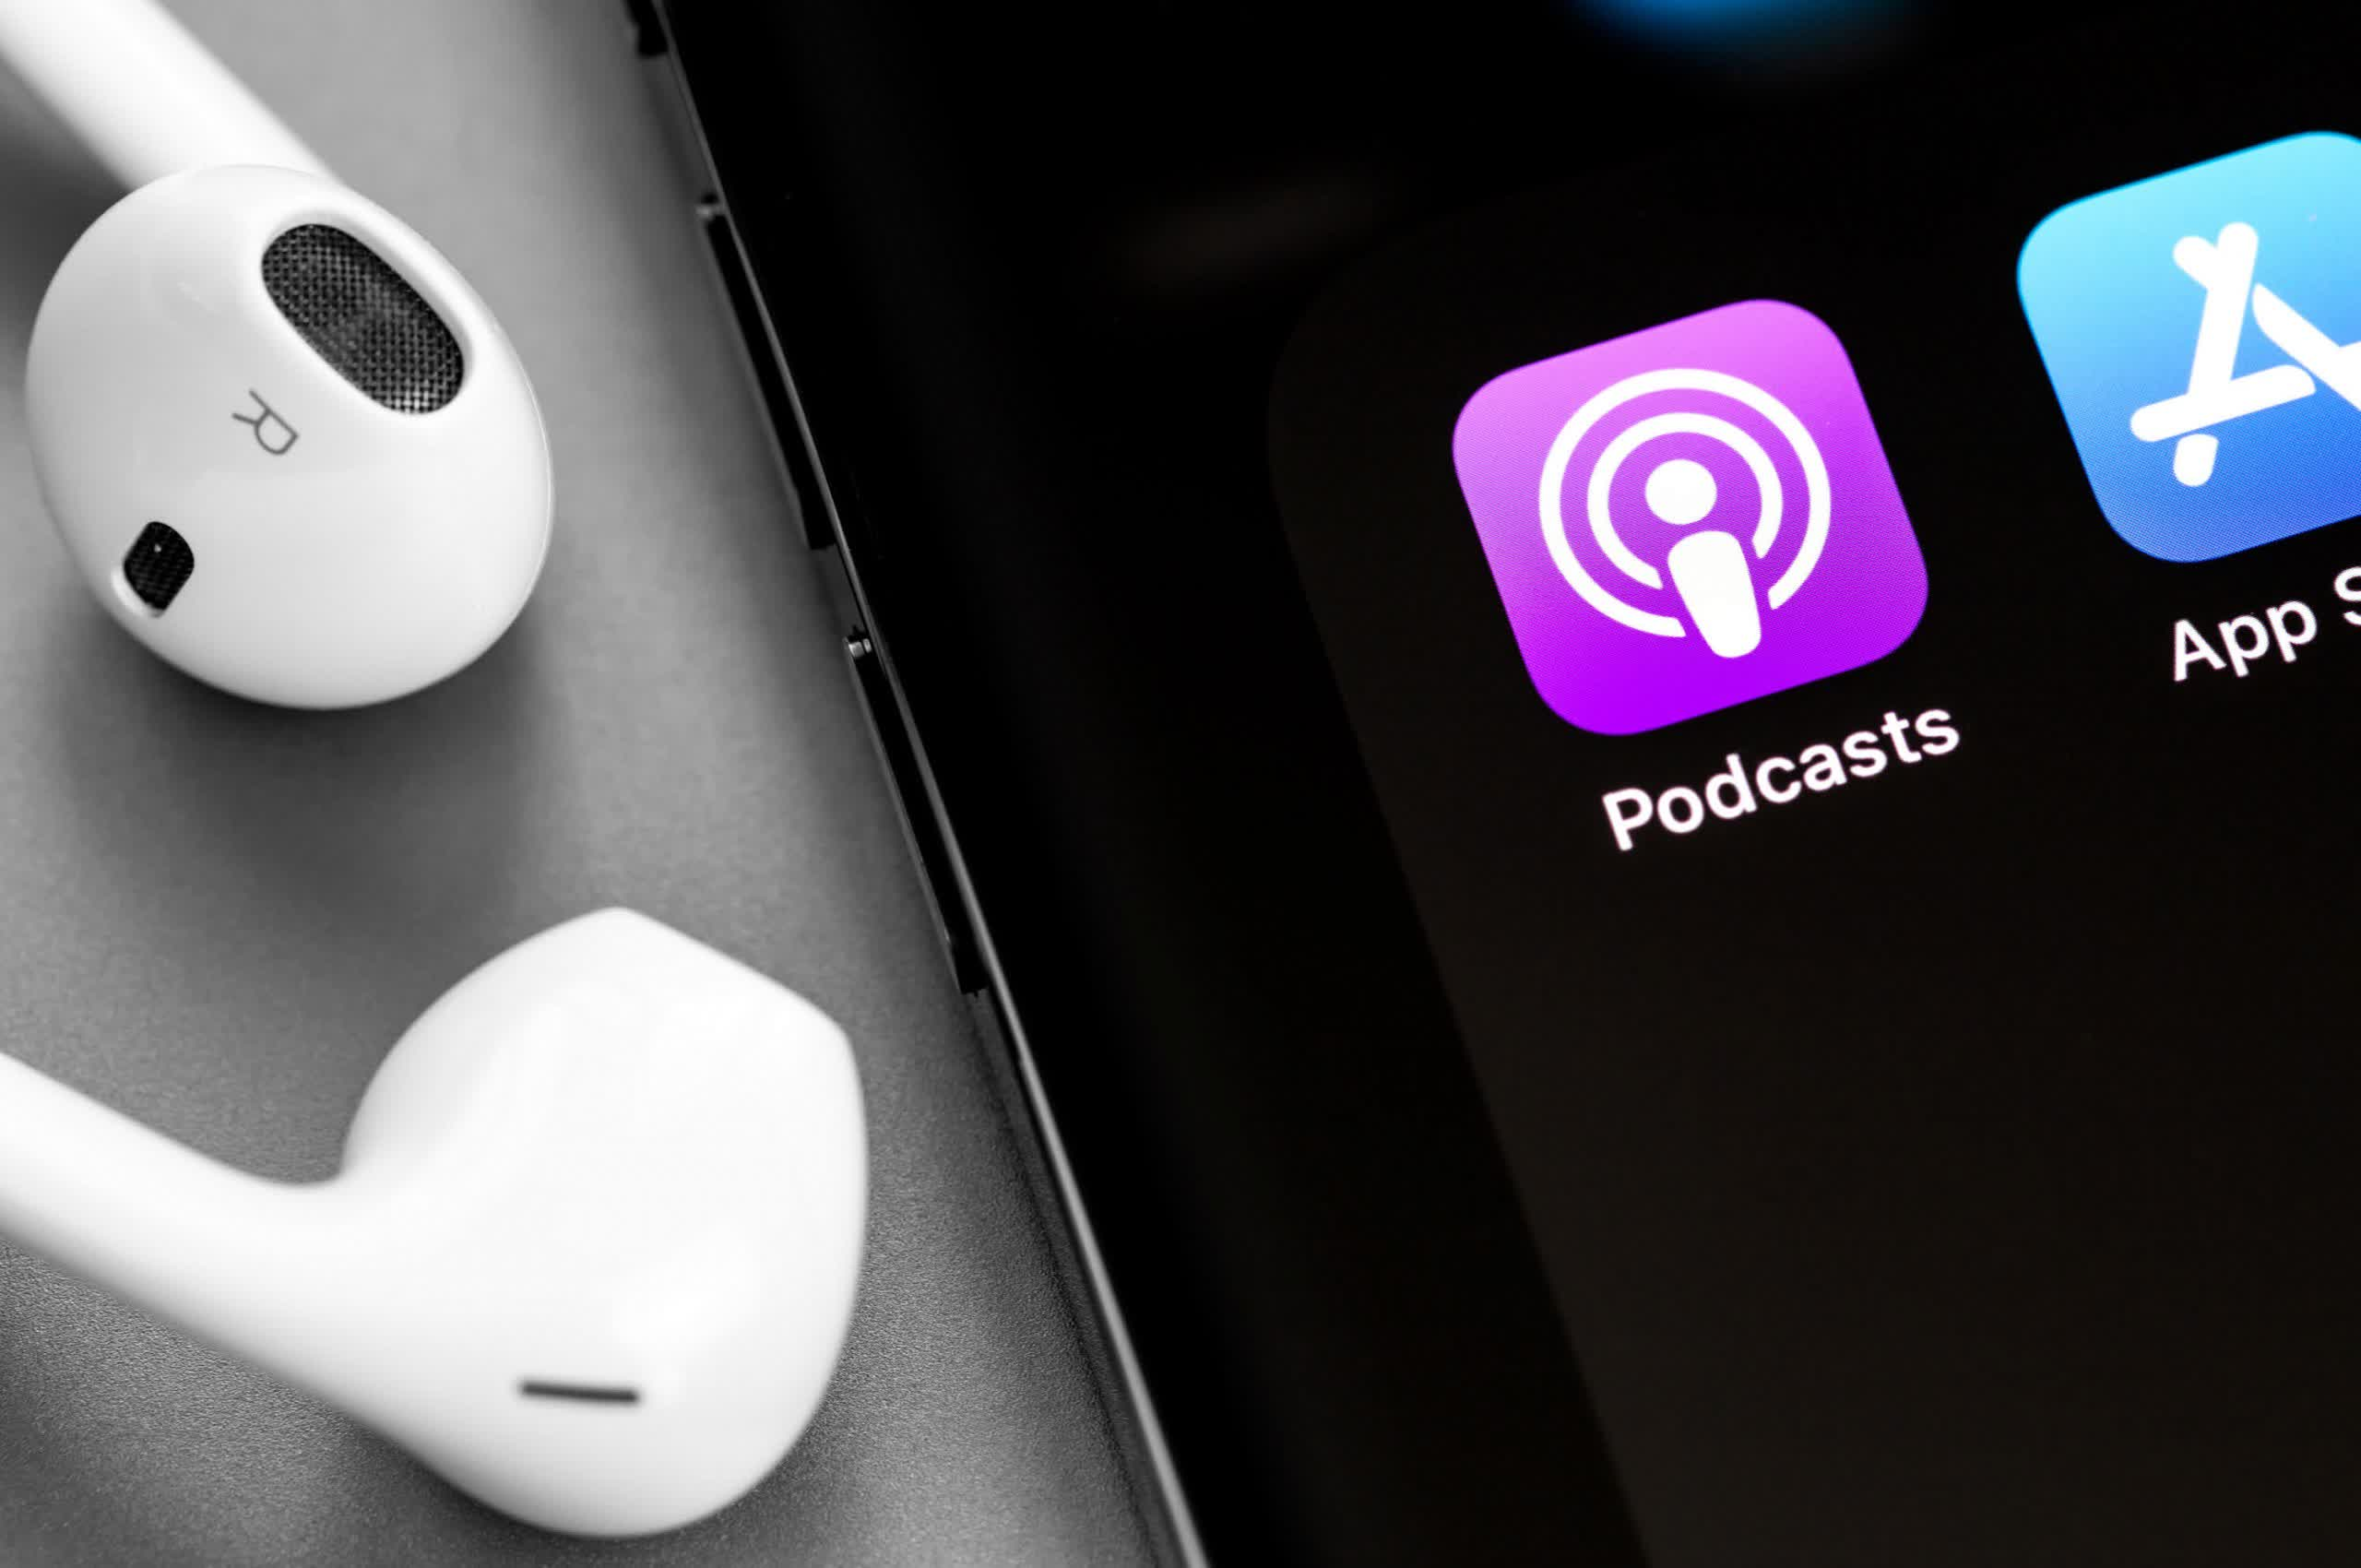 Apple quietly replaces 'Subscribe' with 'Follow' in Podcasts app update